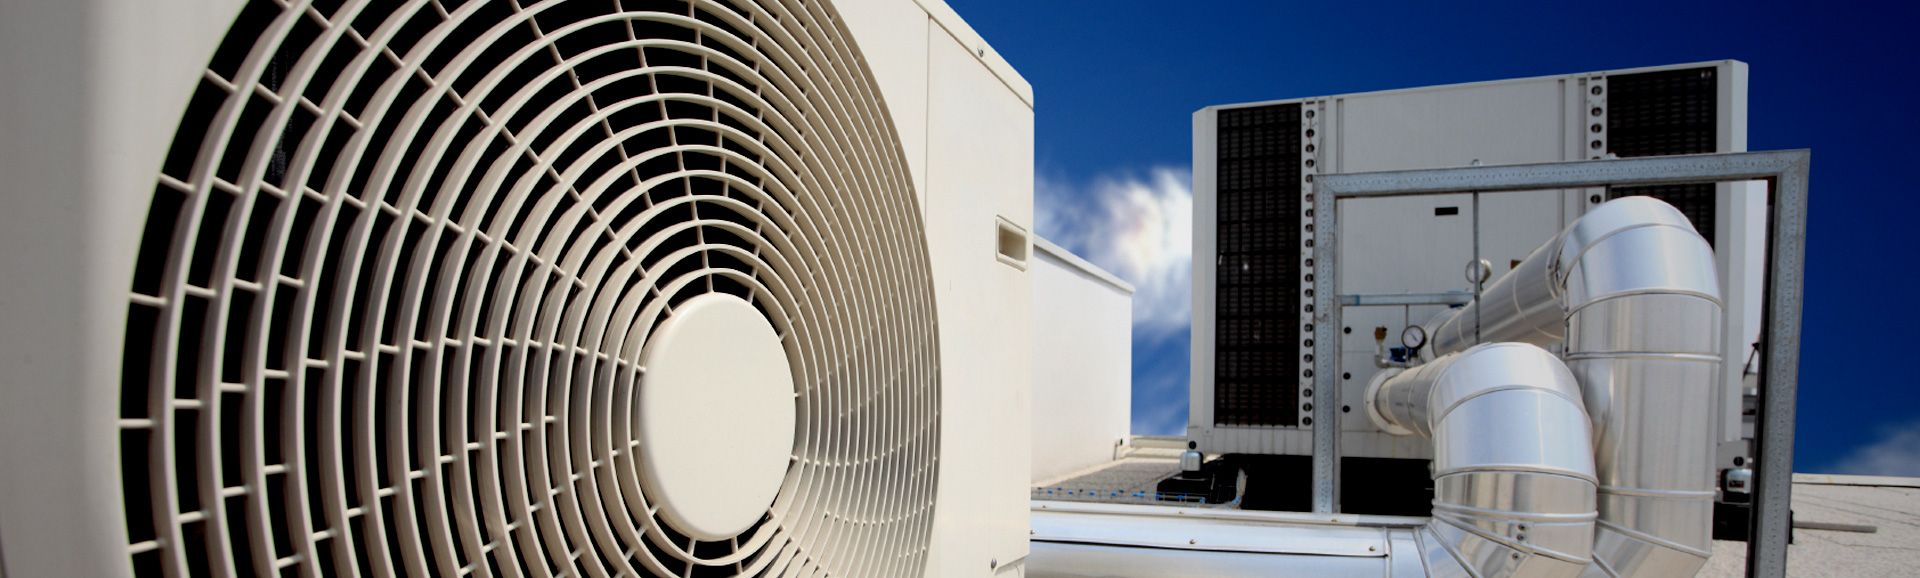 Pin By The Tenders On Industry Wise Tenders Refrigeration Air